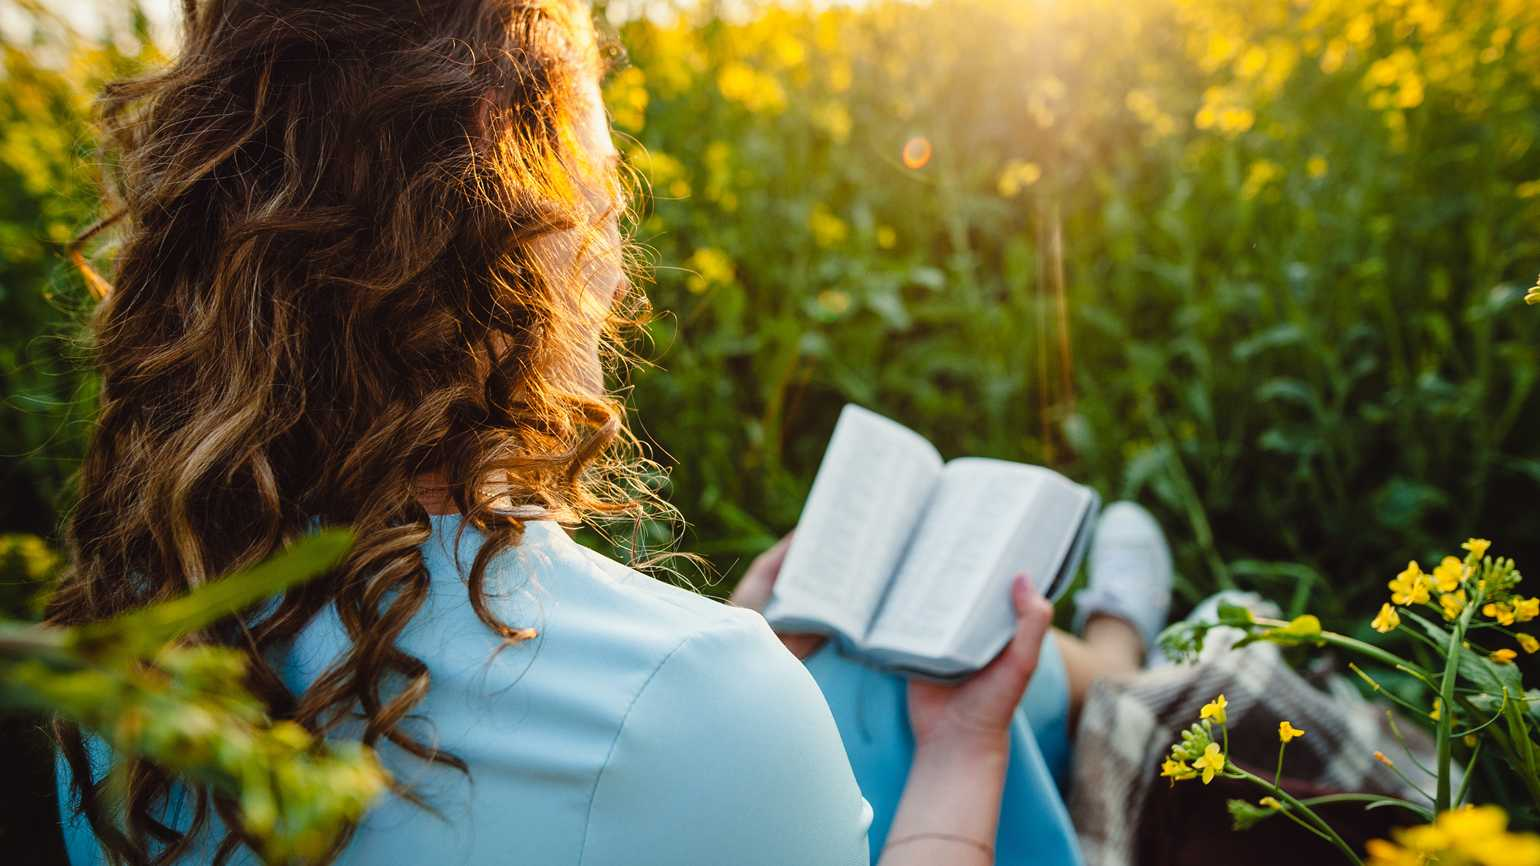 A woman reading the Bible in the grass; Getty Images